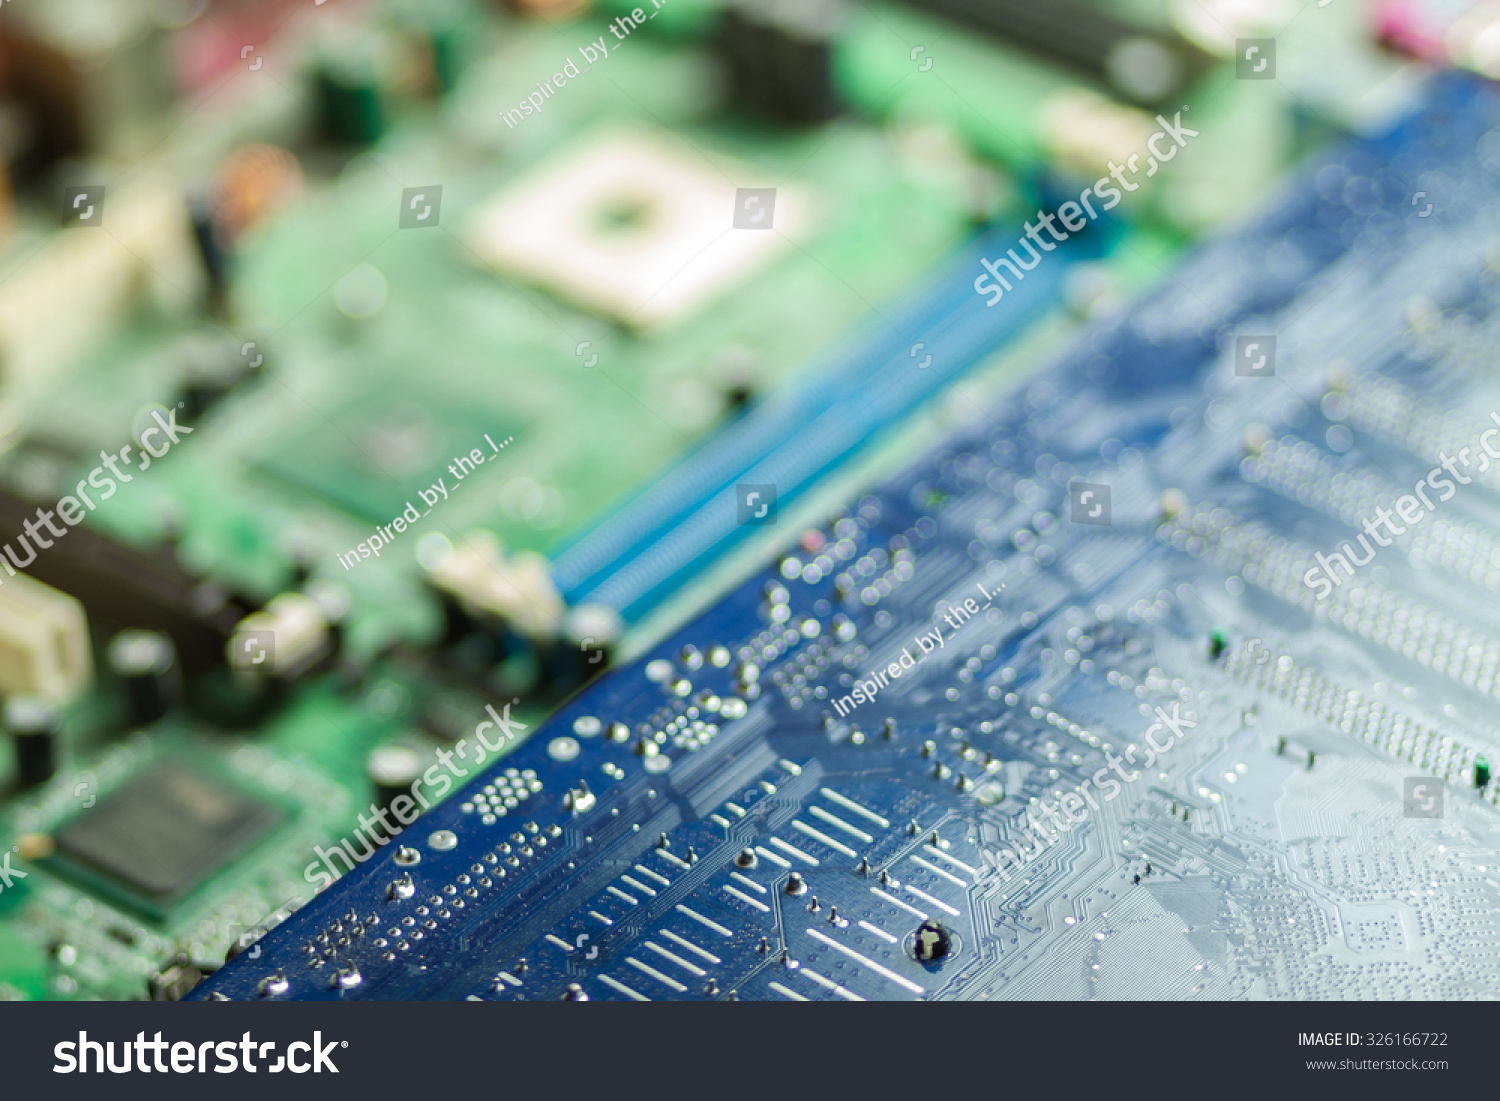 Royalty Free Blurred Printed Circuit Board Wallpaper 326166722 Detail Of A Stock Image Photo